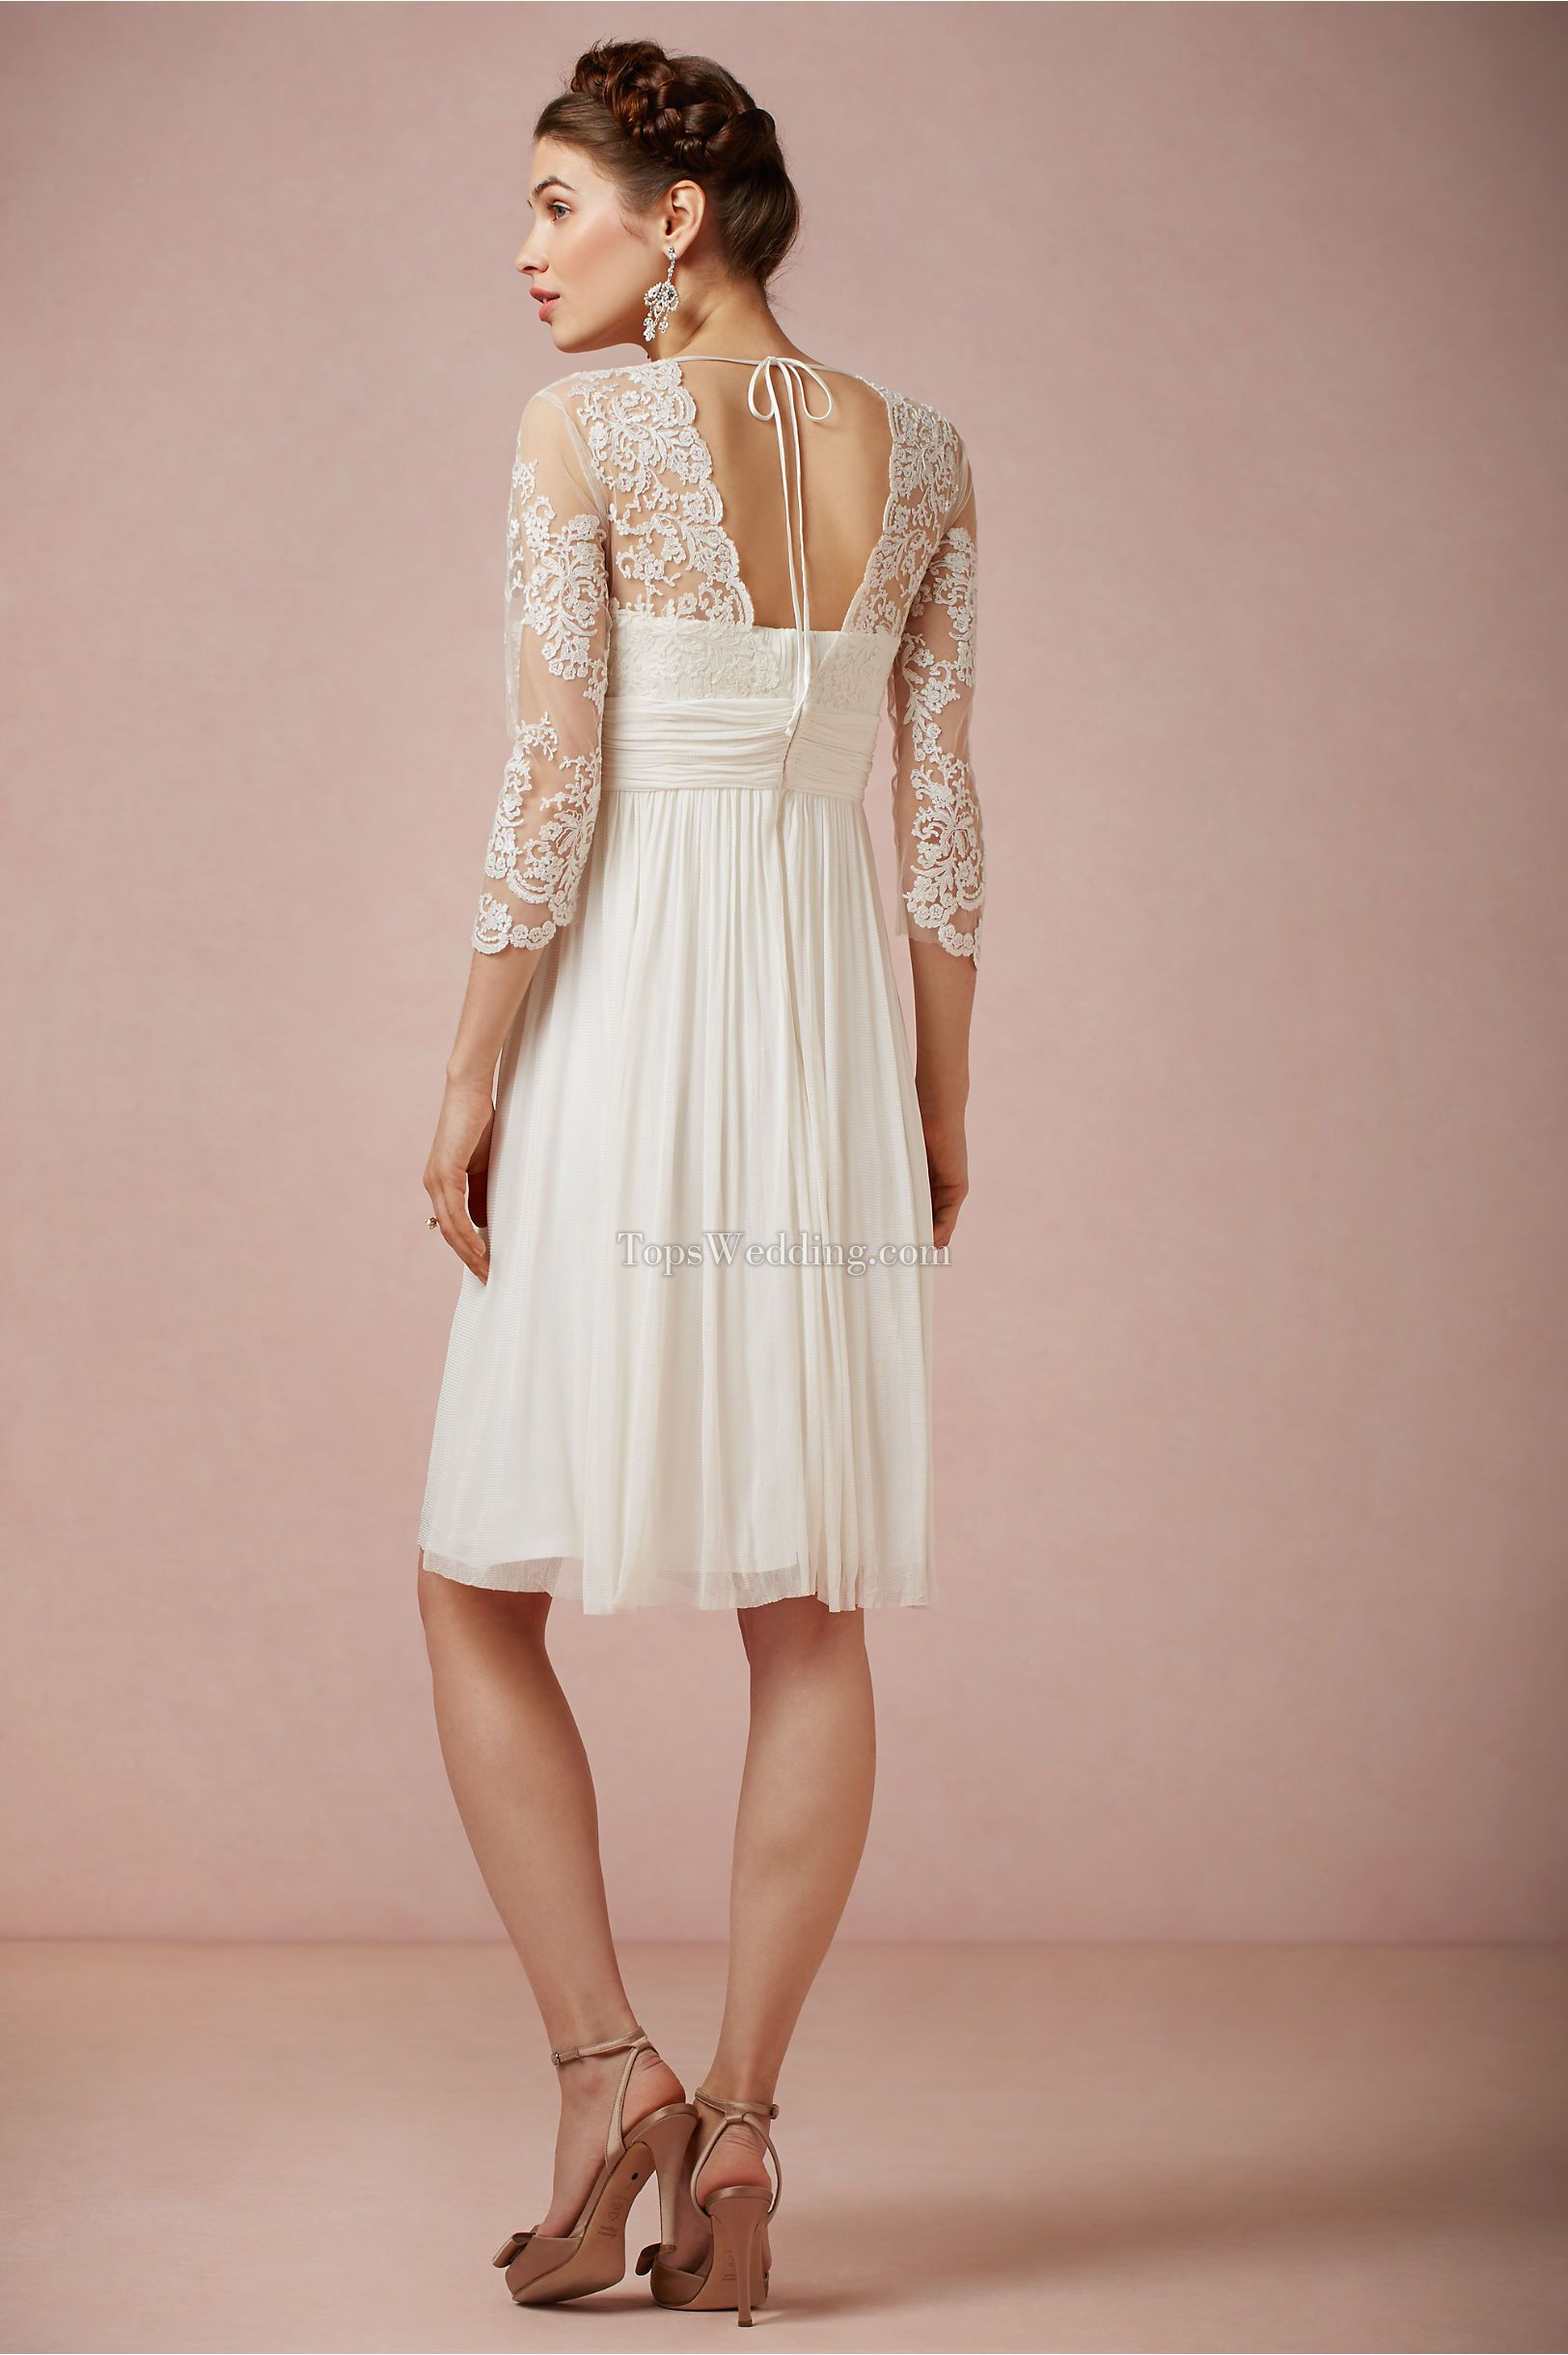 Mature v-neck lace white Bridesmaid Dresses in knee-length | Fashion ...